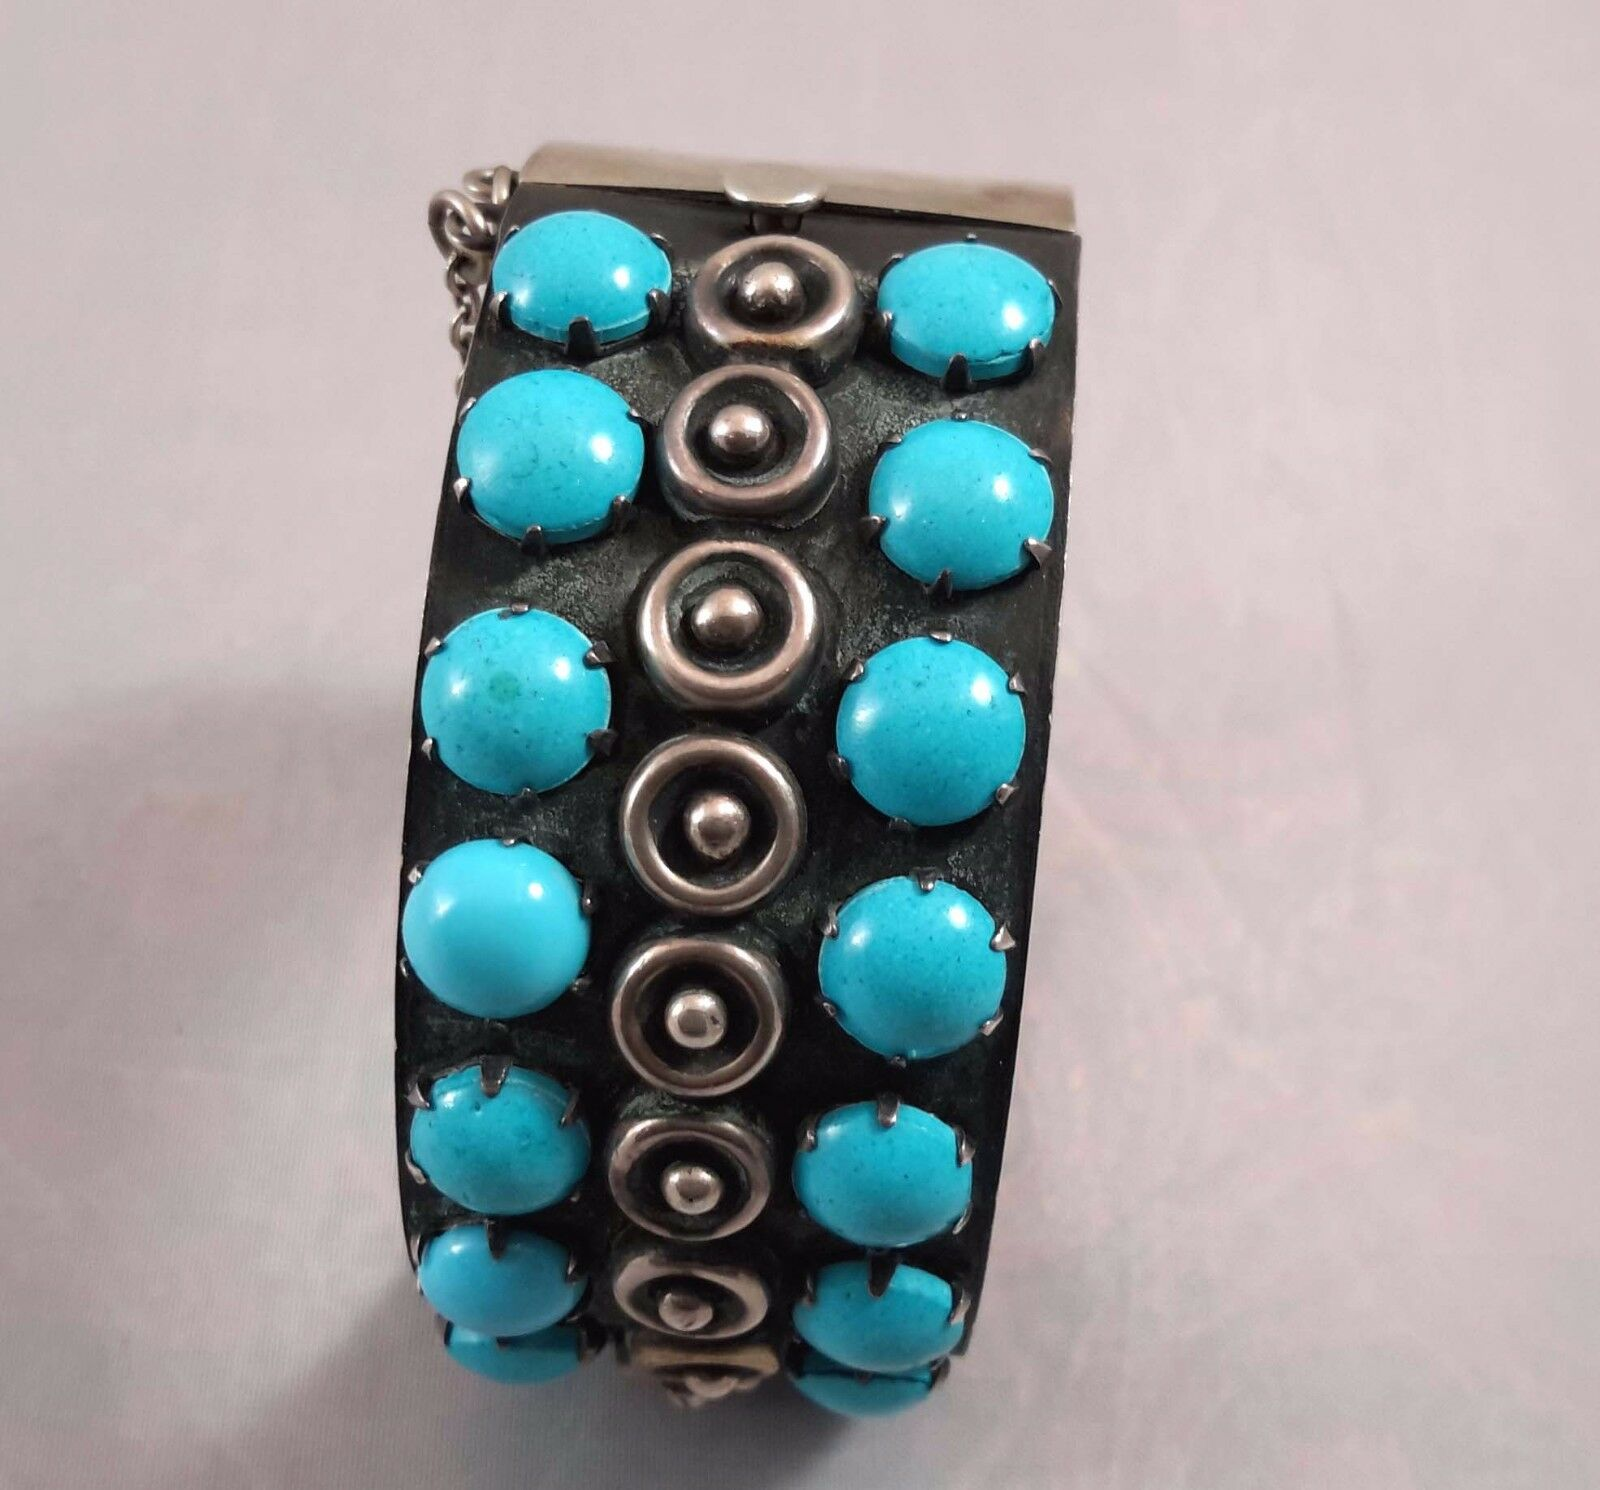 MID CENTURY MODERN STERLING SILVER TURQUOISE BRA… - image 2